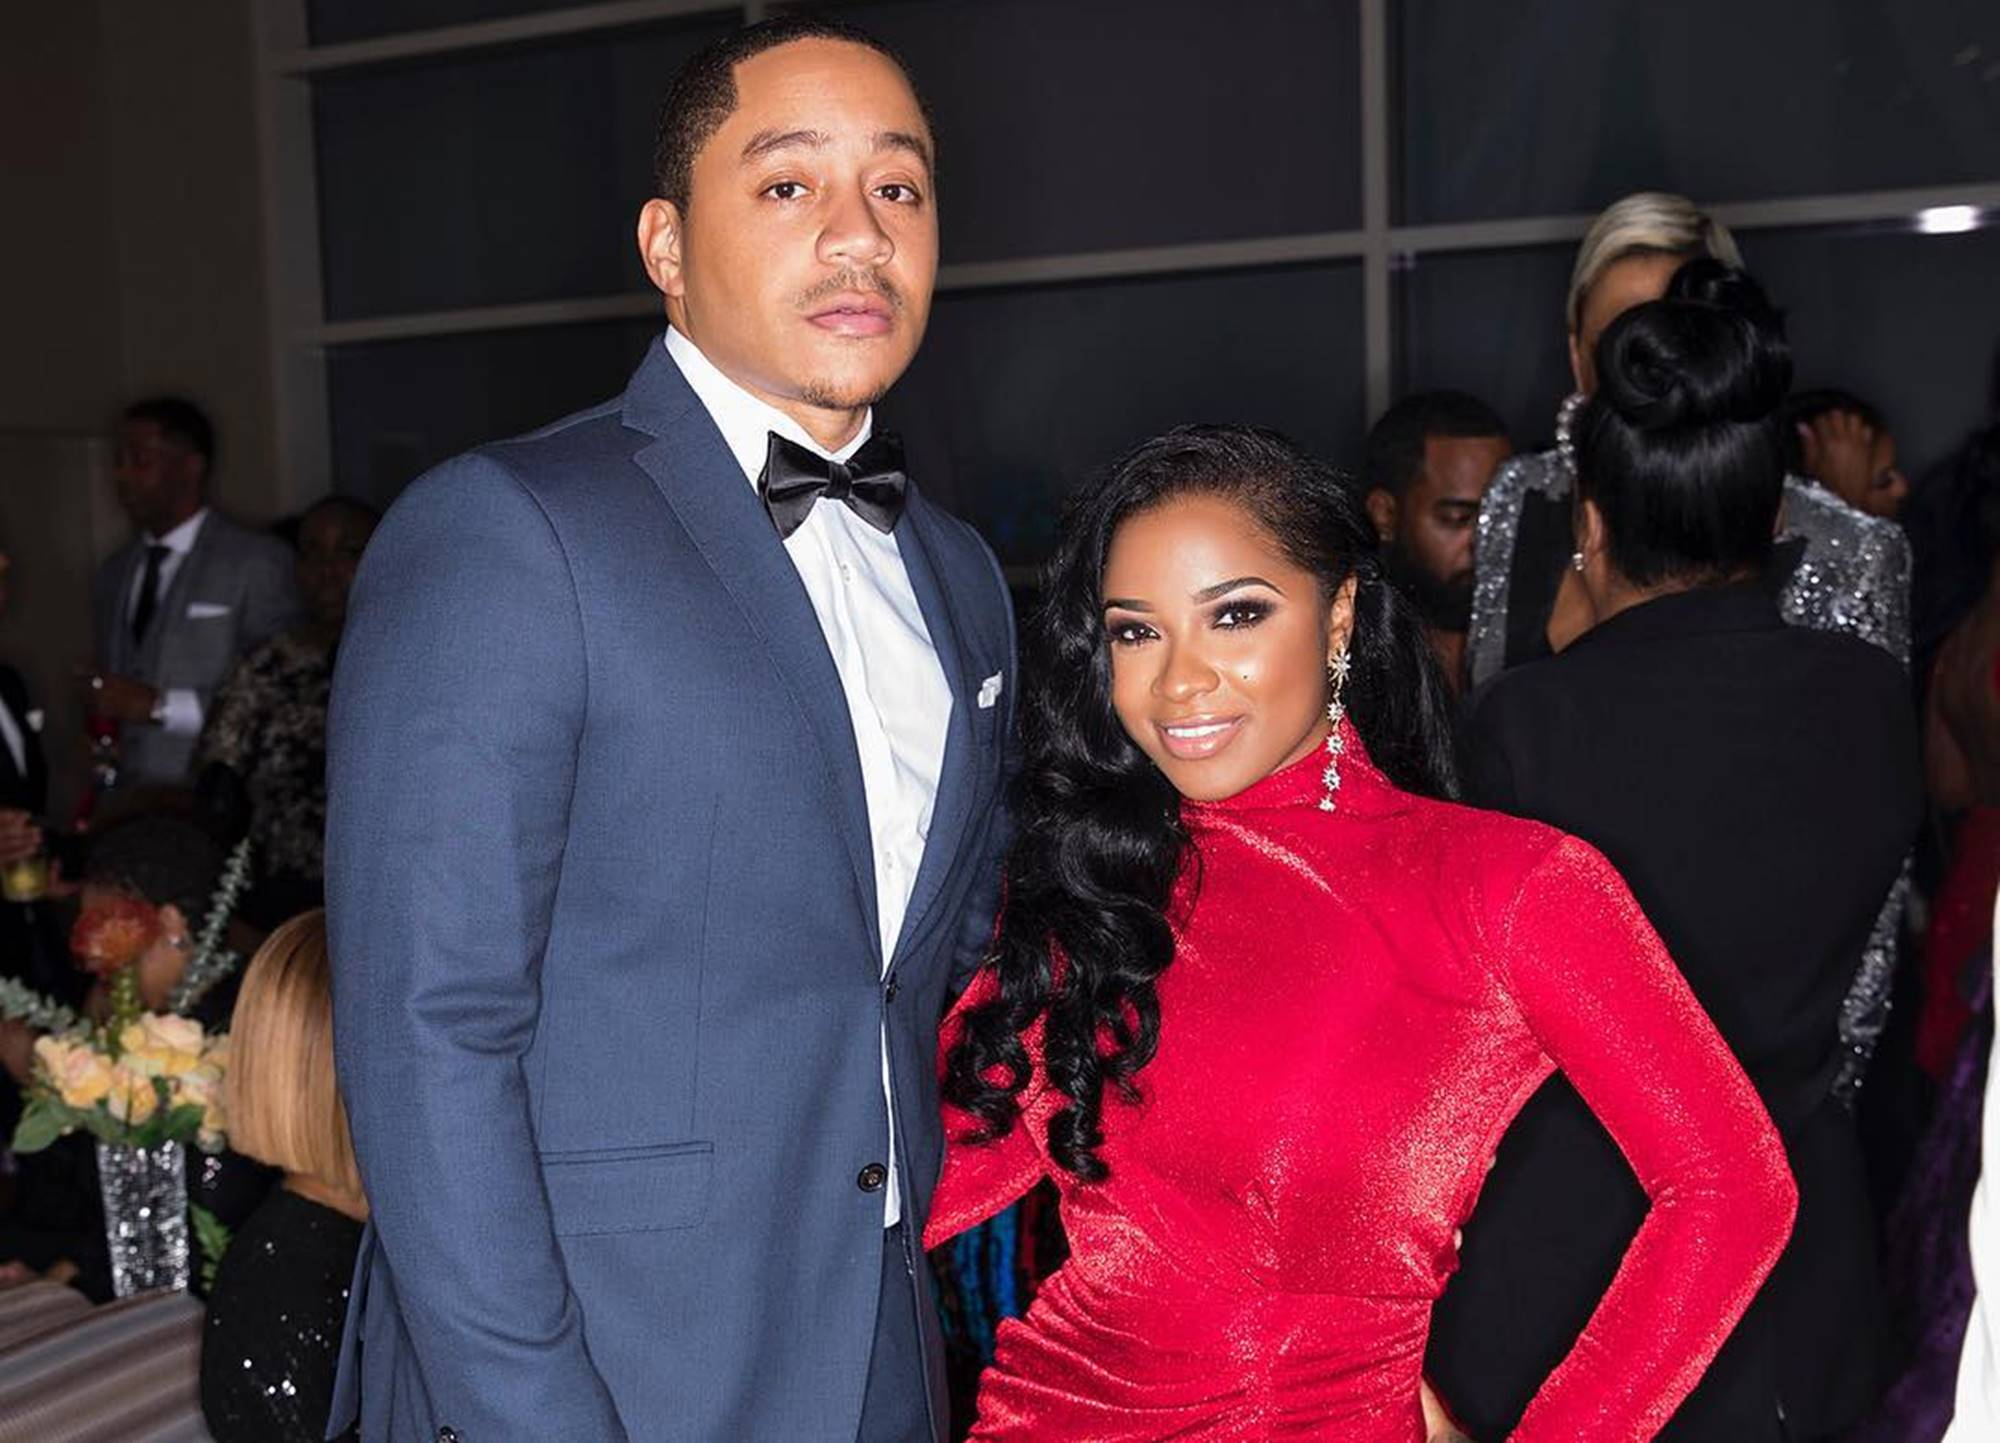 Toya Wright And Robert Rushing Are Twinning In Matching Outfits - Fans Assume The Reason For Which She's Not In A Hurry To Get Married Again